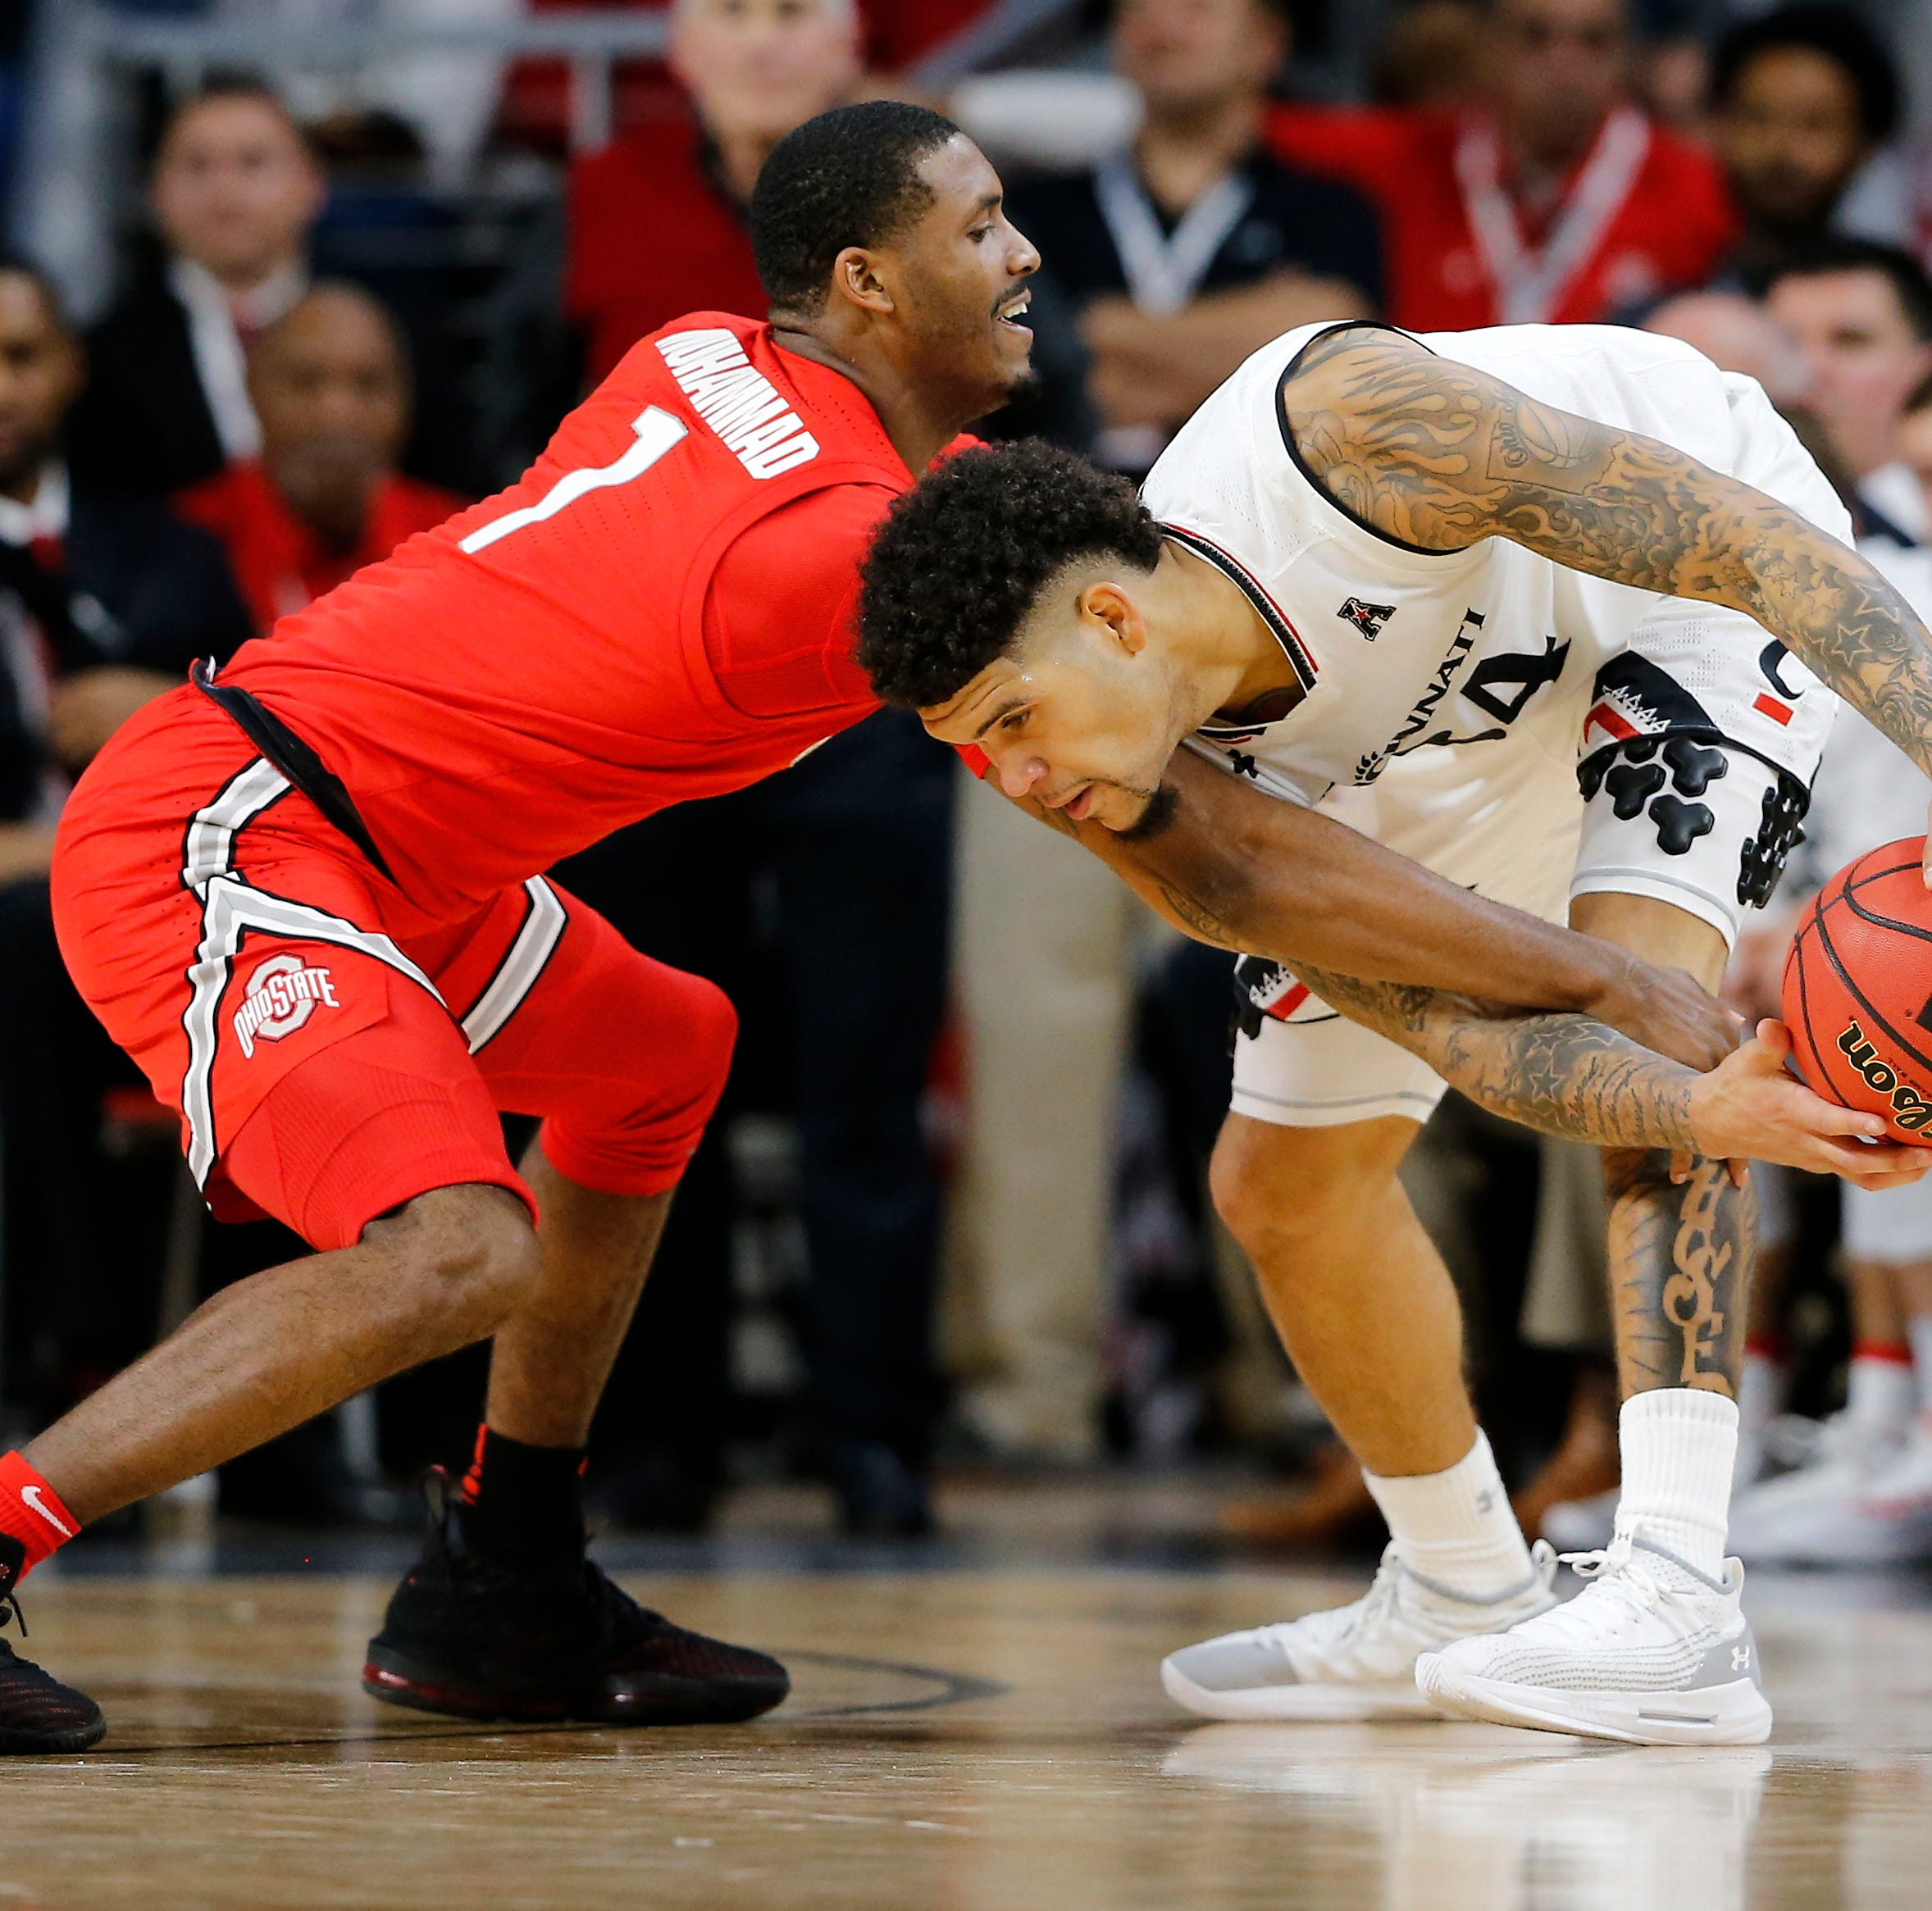 Cincinnati Bearcats guard Jarron Cumberland (34) protects the ball from Ohio State Buckeyes guard Luther Muhammad (1) in the second half of the NCAA basketball game between the Cincinnati Bearcats and the Ohio State Buckeyes at Fifth Third Arena in Cincinnati on Wednesday, Nov. 7, 2018. The Bearcats opened the season 0-1 with a 64-56 loss the Ohio State.